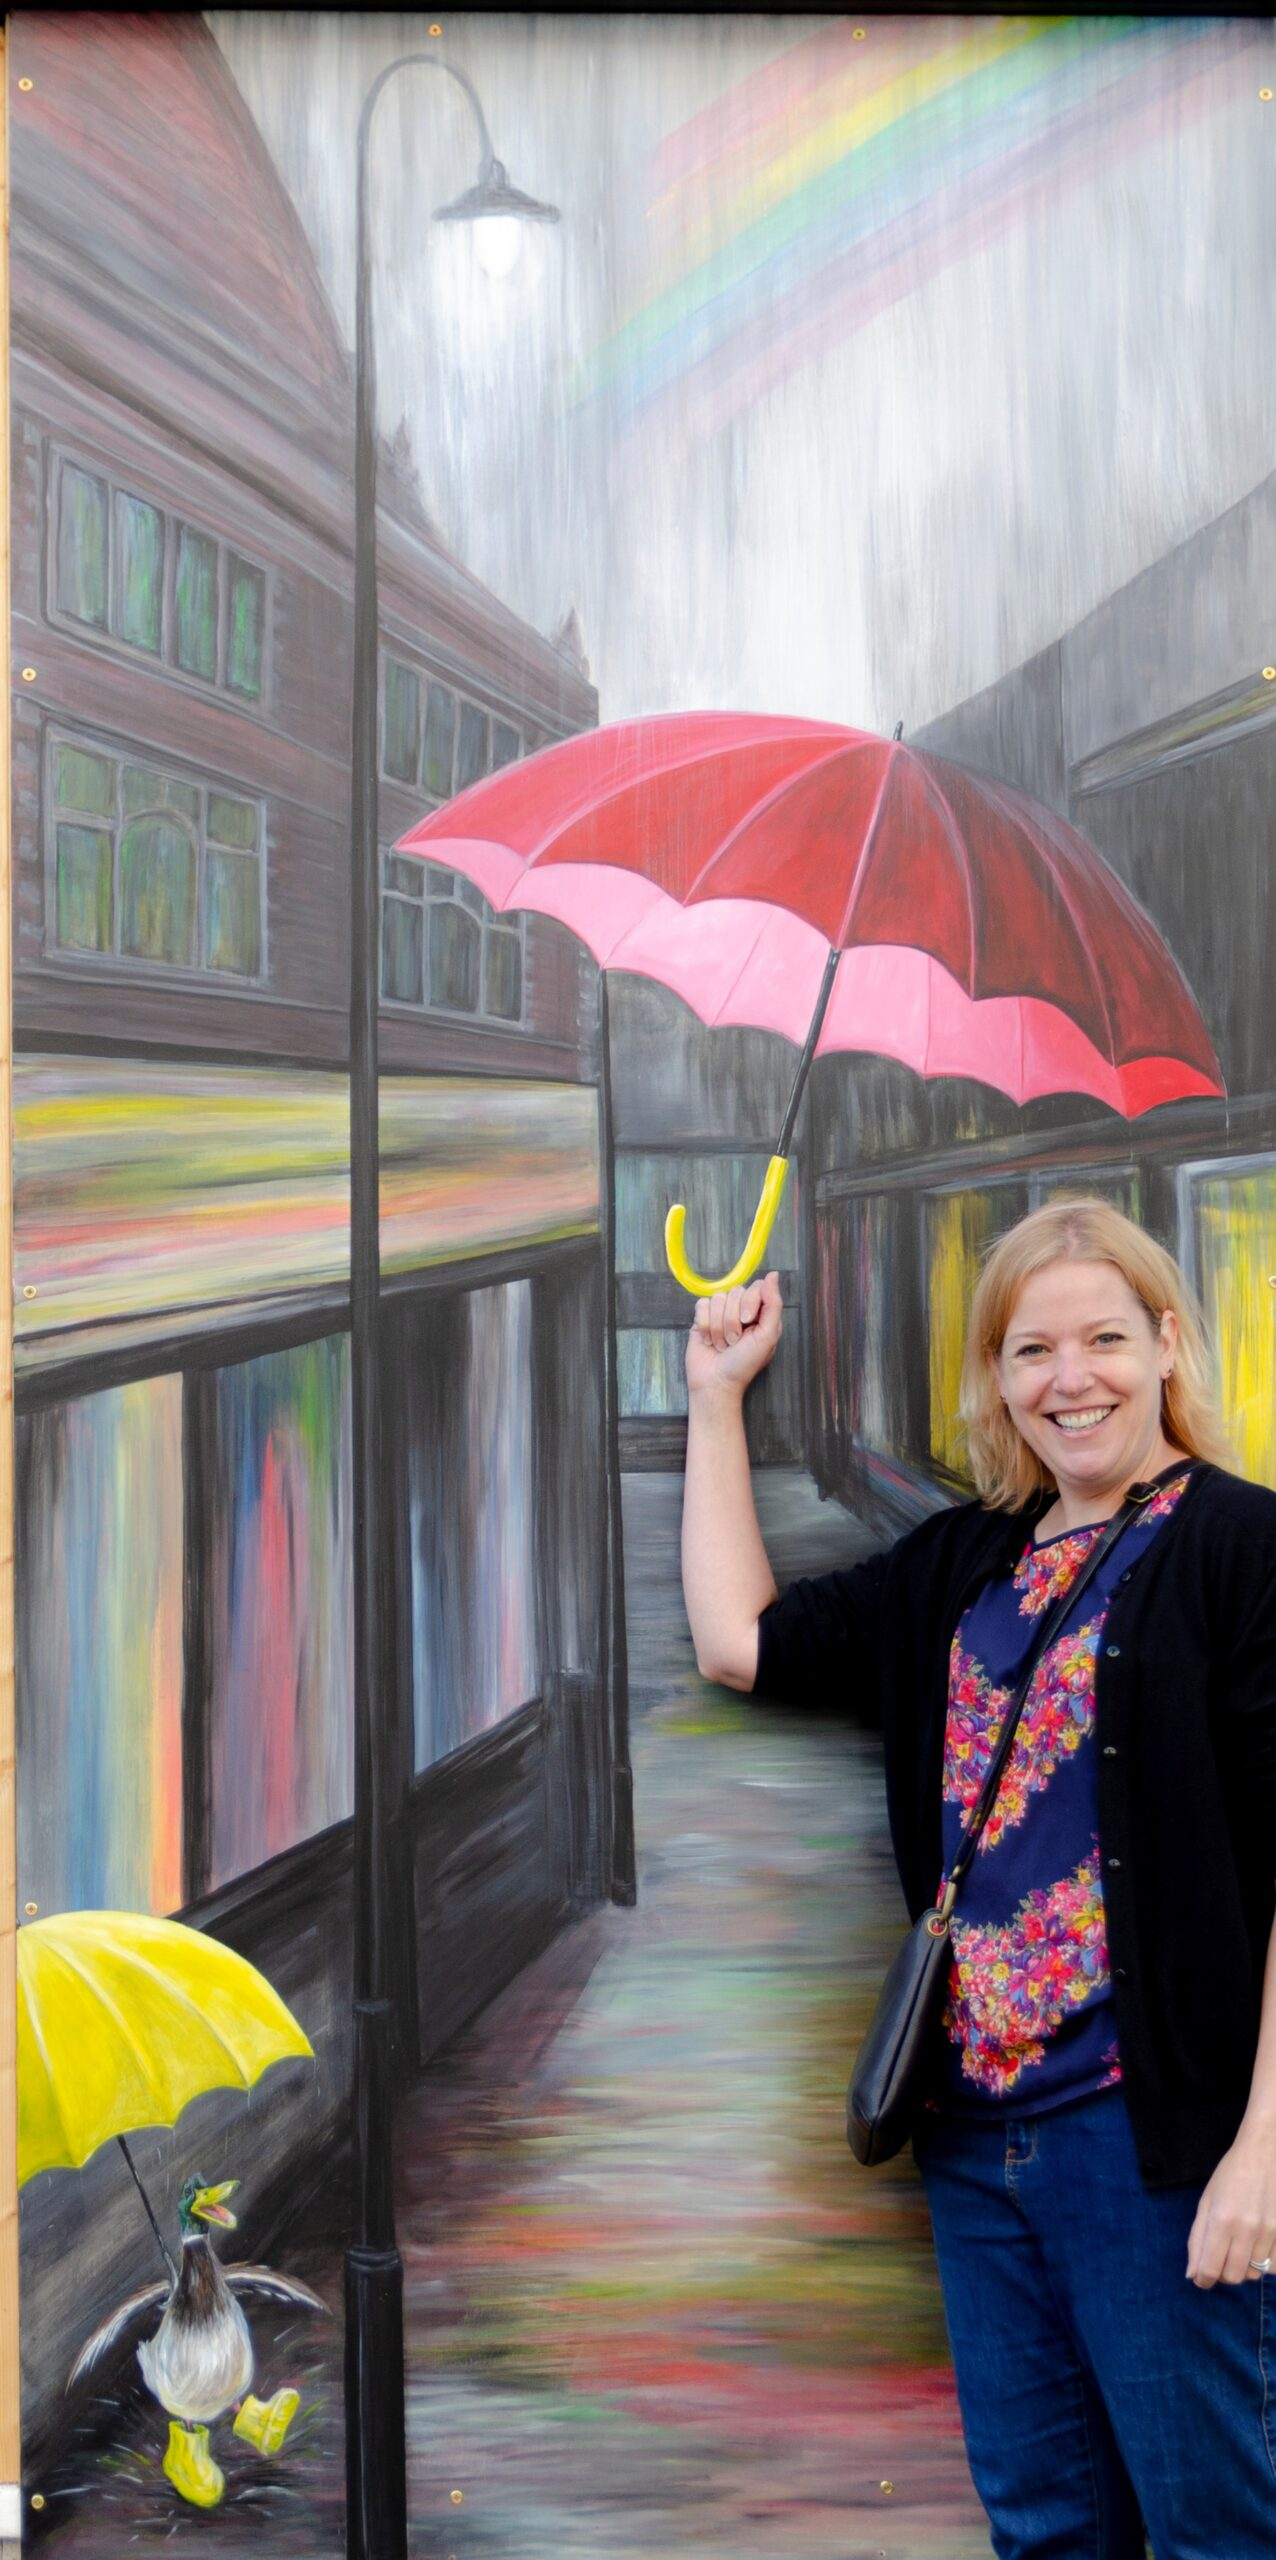 Artist Catherine Matthews with her new piece of public art in Kettering